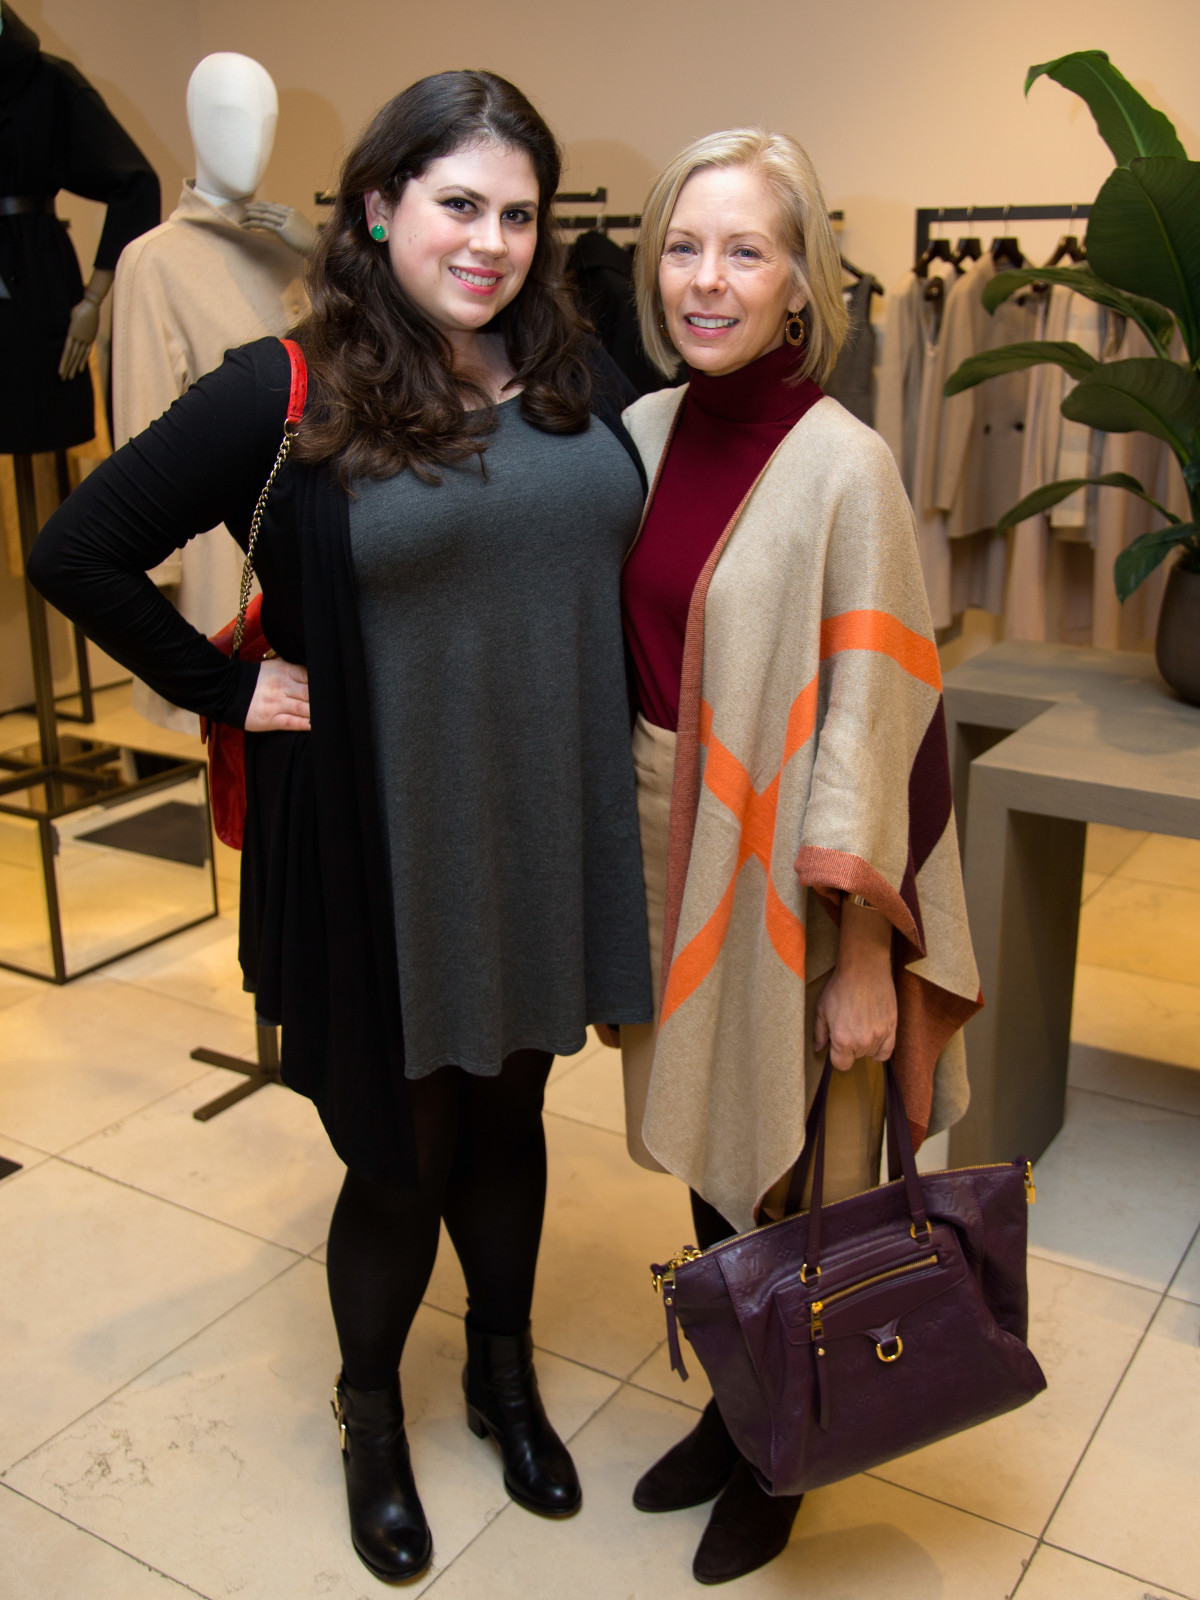 Max Mara William Wegman event Meghan Thrash, Karen Sumner